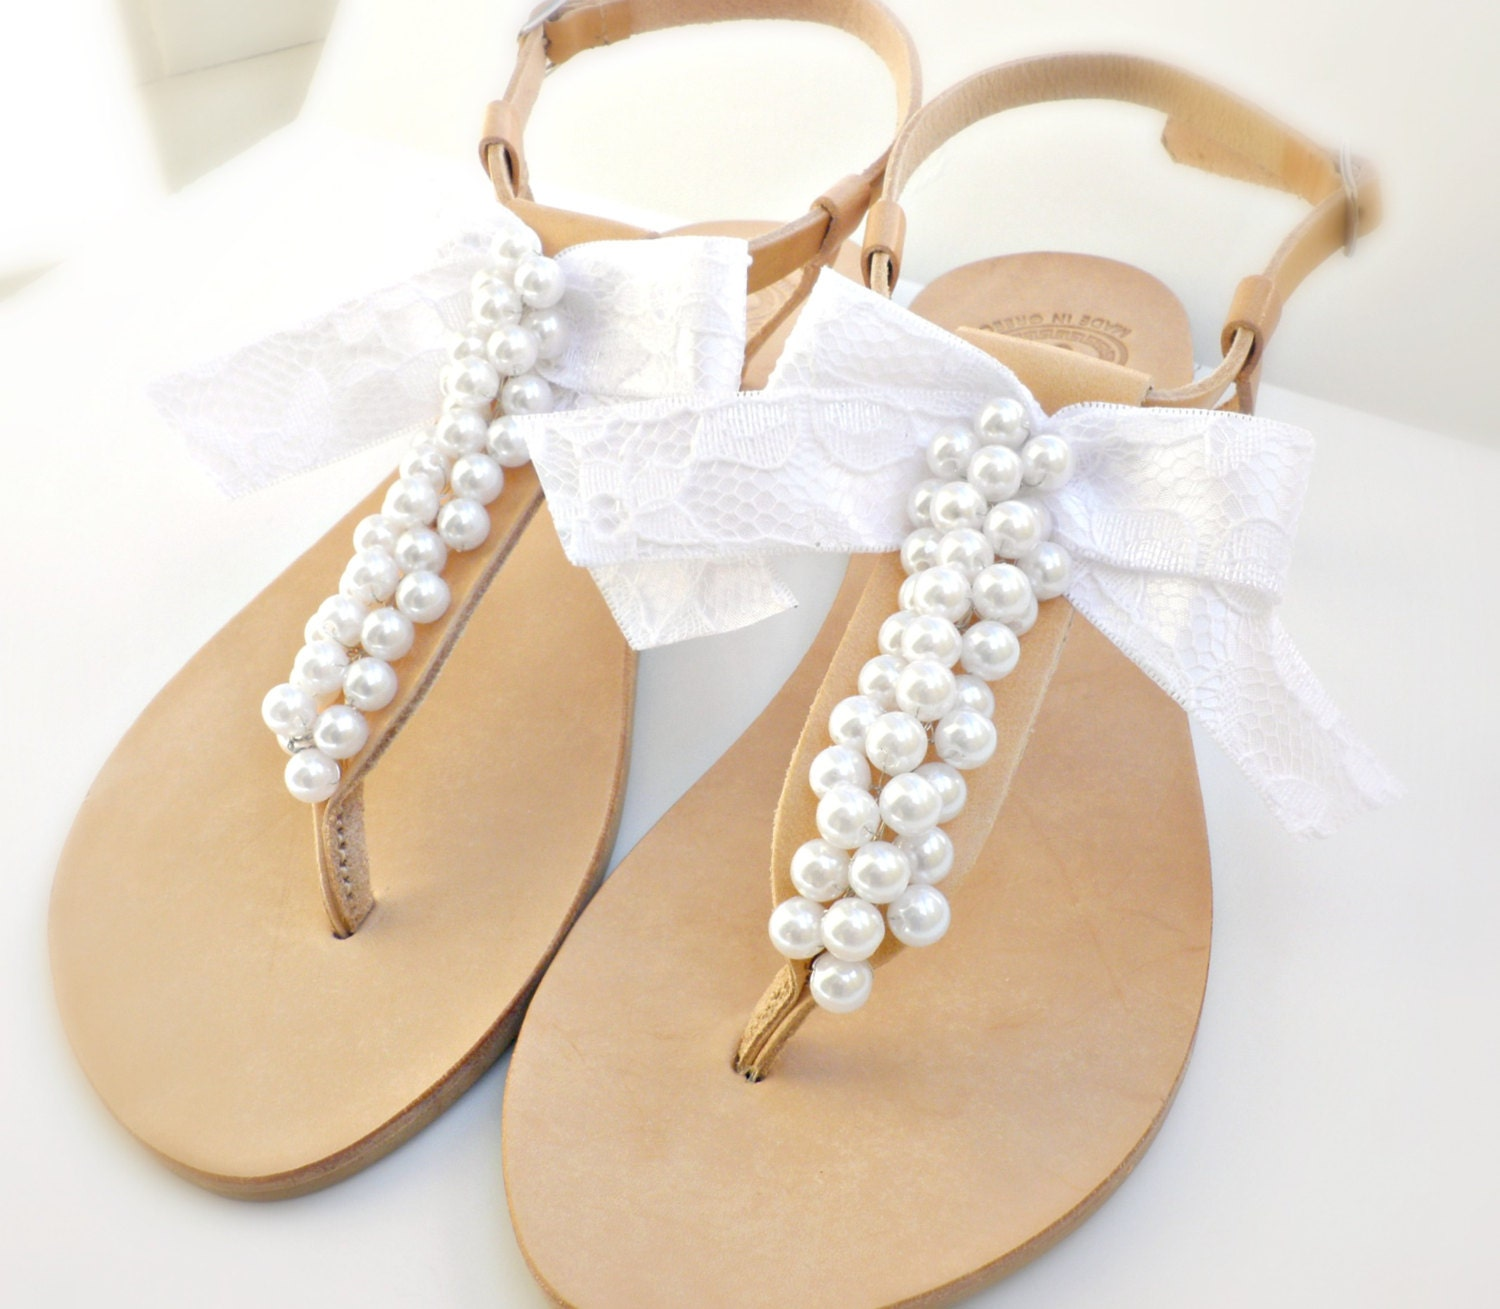 2019 year style- Sandals Wedding for bridesmaids